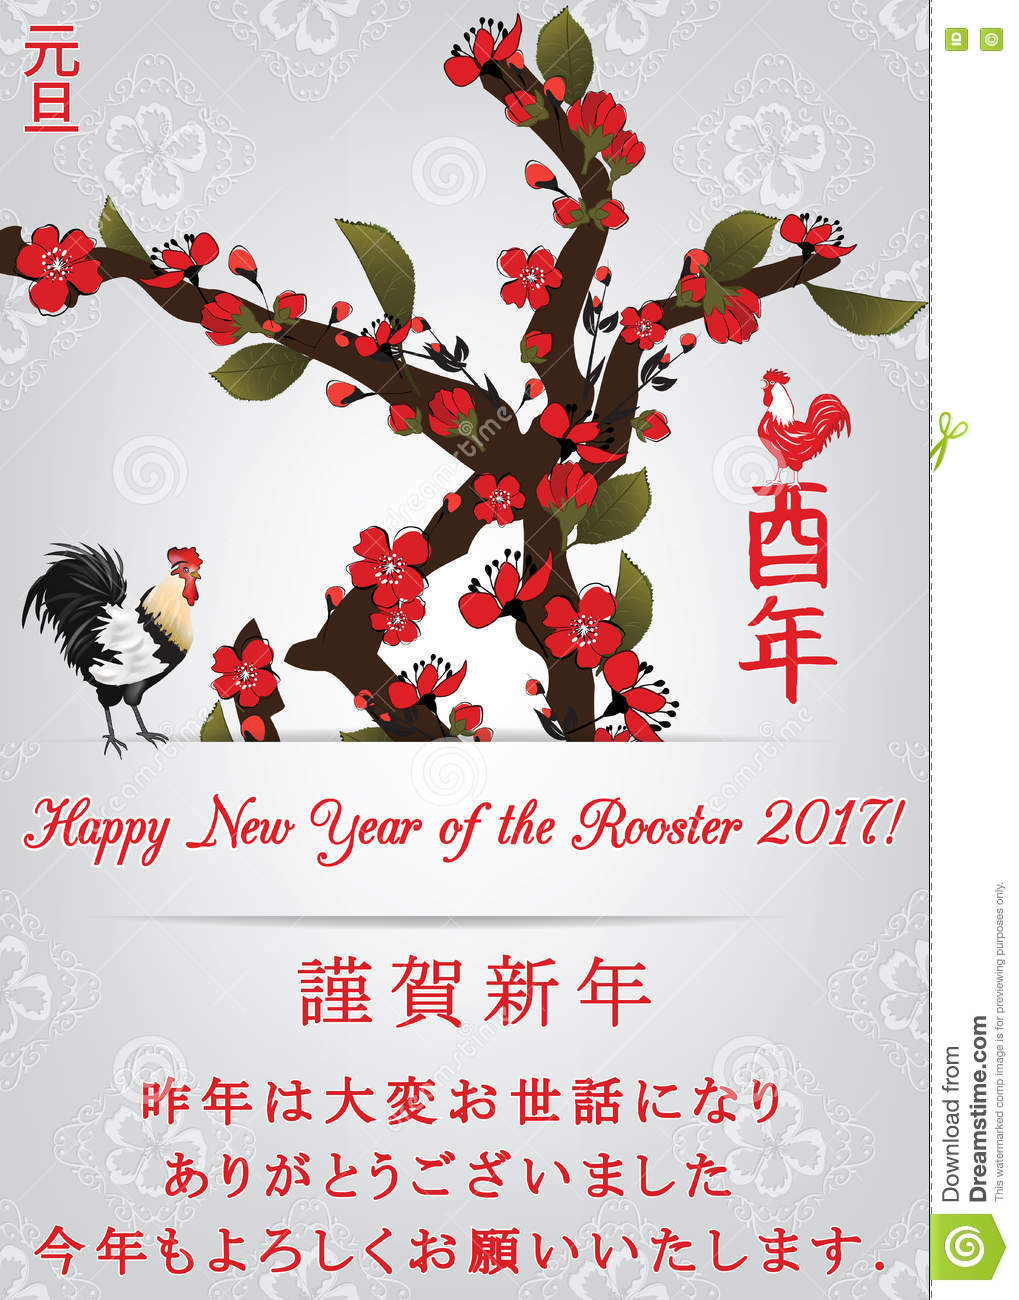 japanese new year greeting card nengajo for the year of the rooster